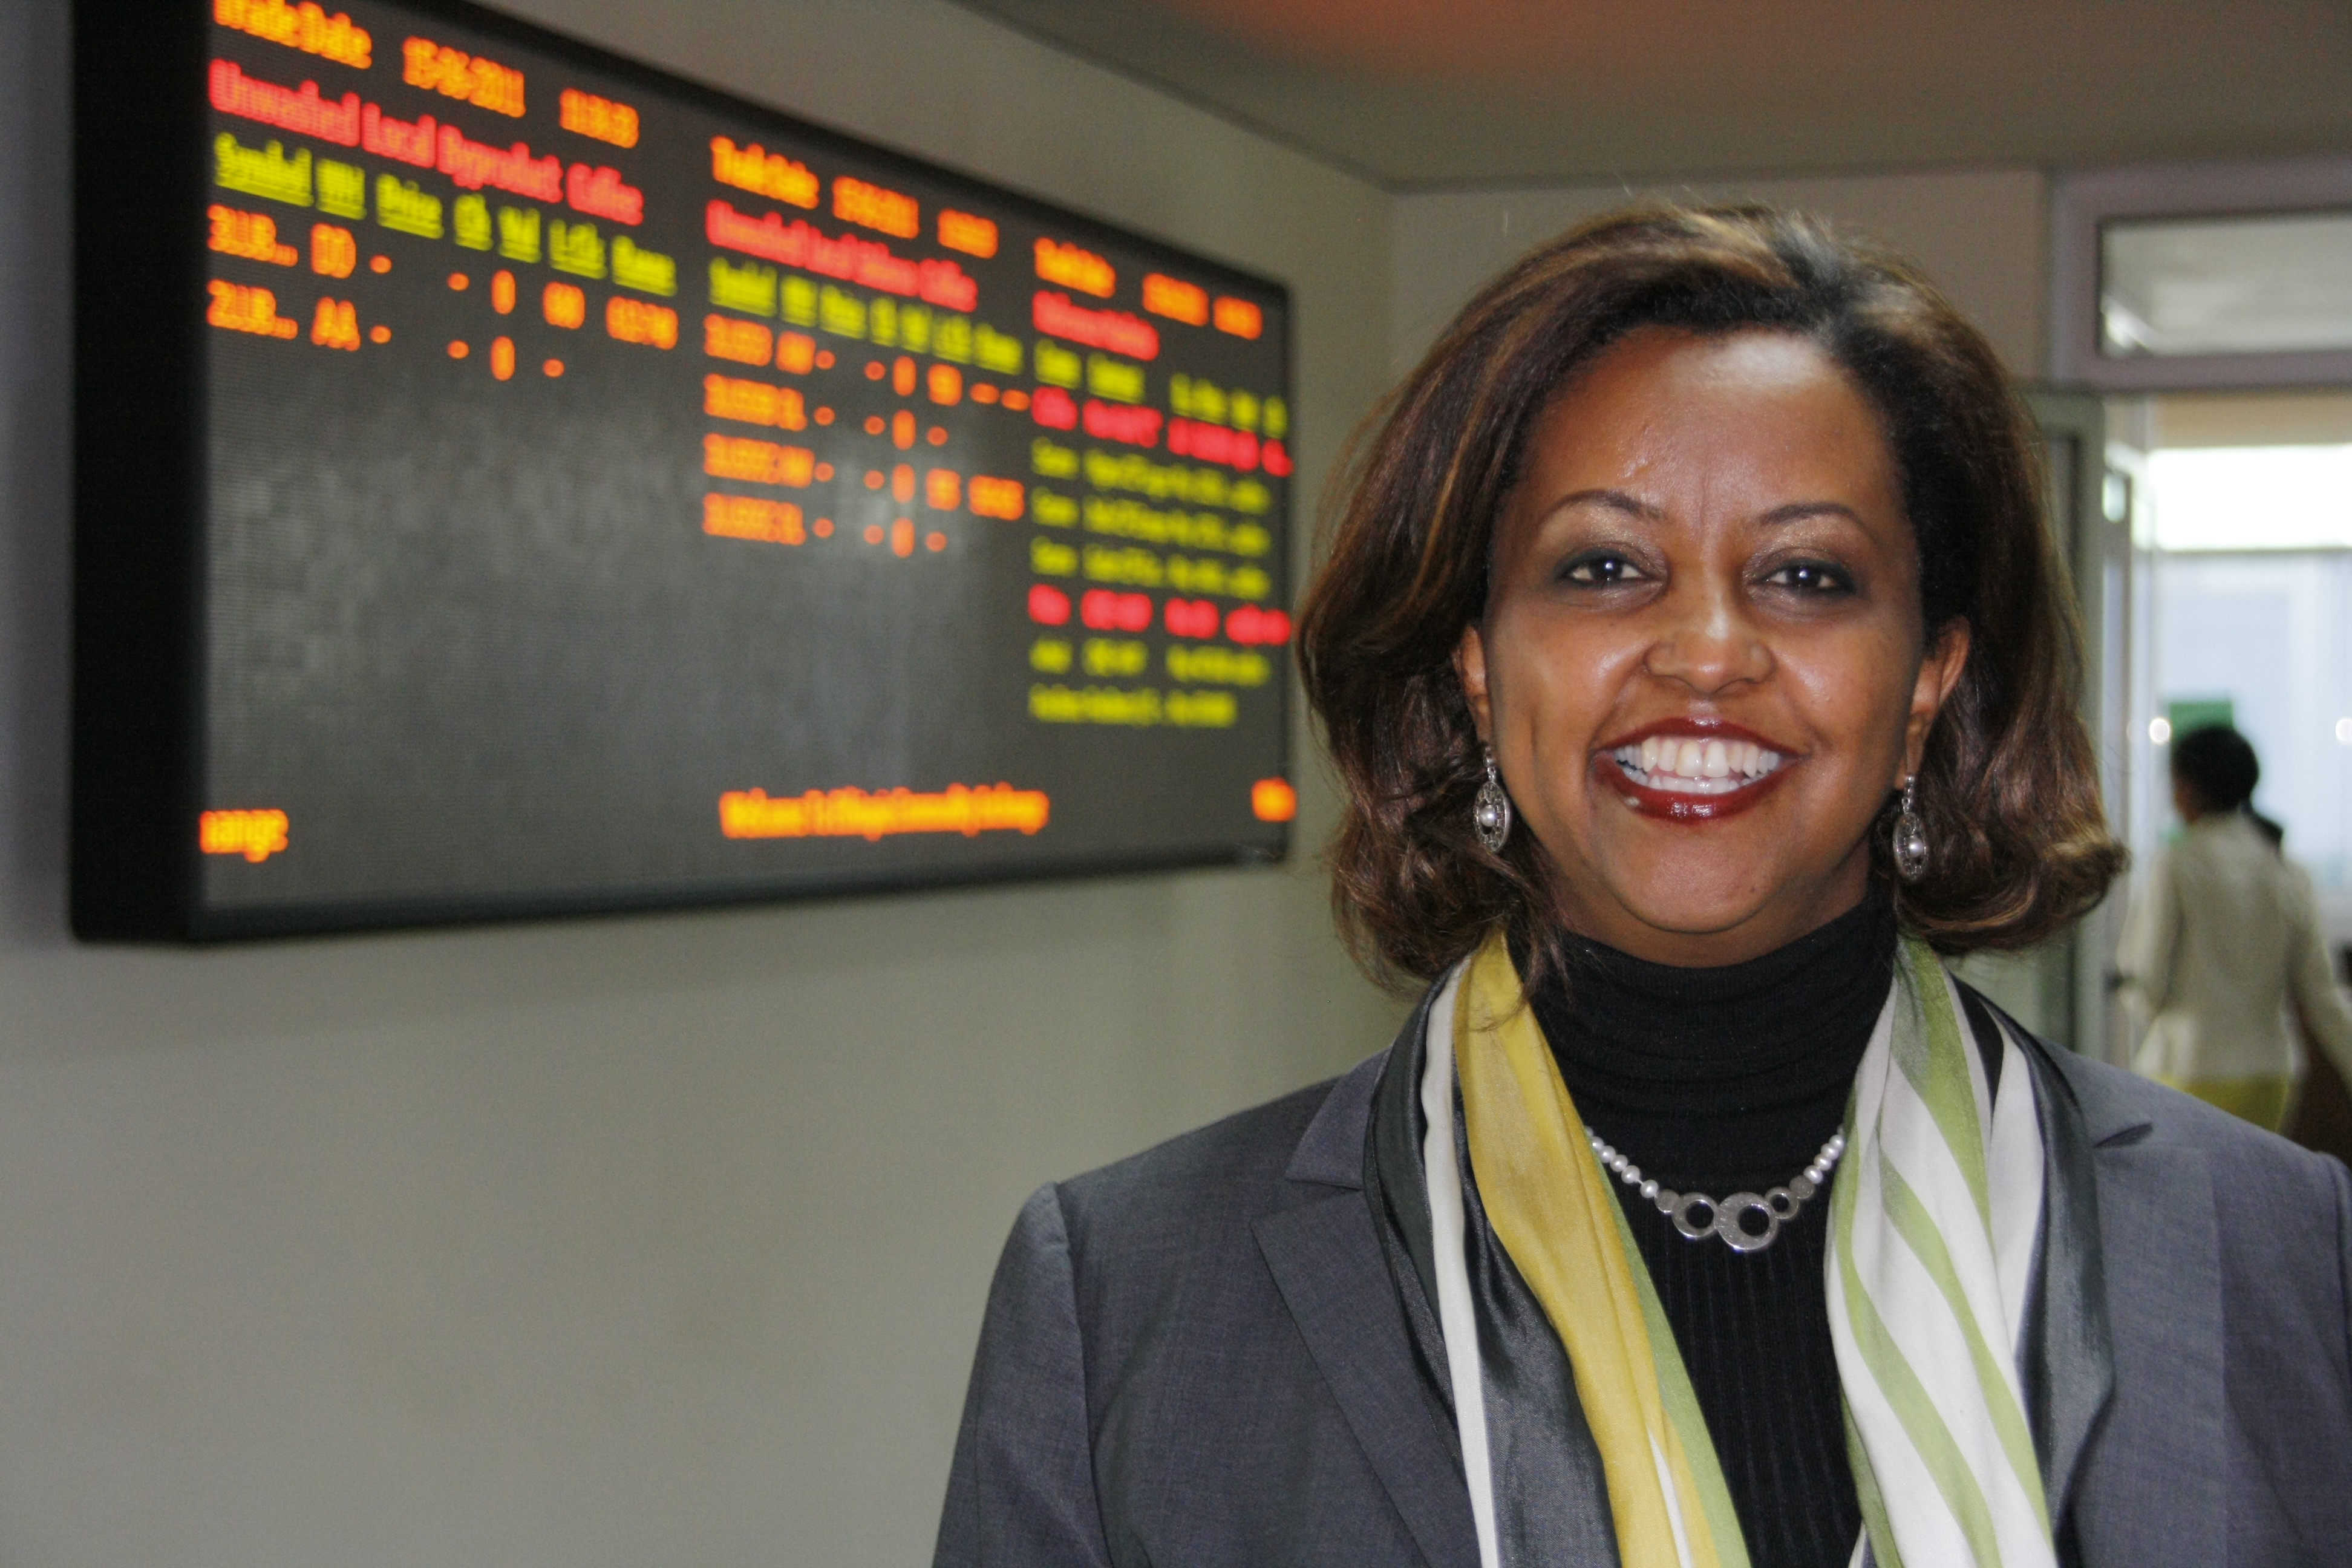 ethiopian economic association research papers Fitsum zewdu mulugeta, ethiopian economics association ethiopian economic policy research institute, poverty and social sector ananlysis department, department member studies development economics, migration studies, and poverty.